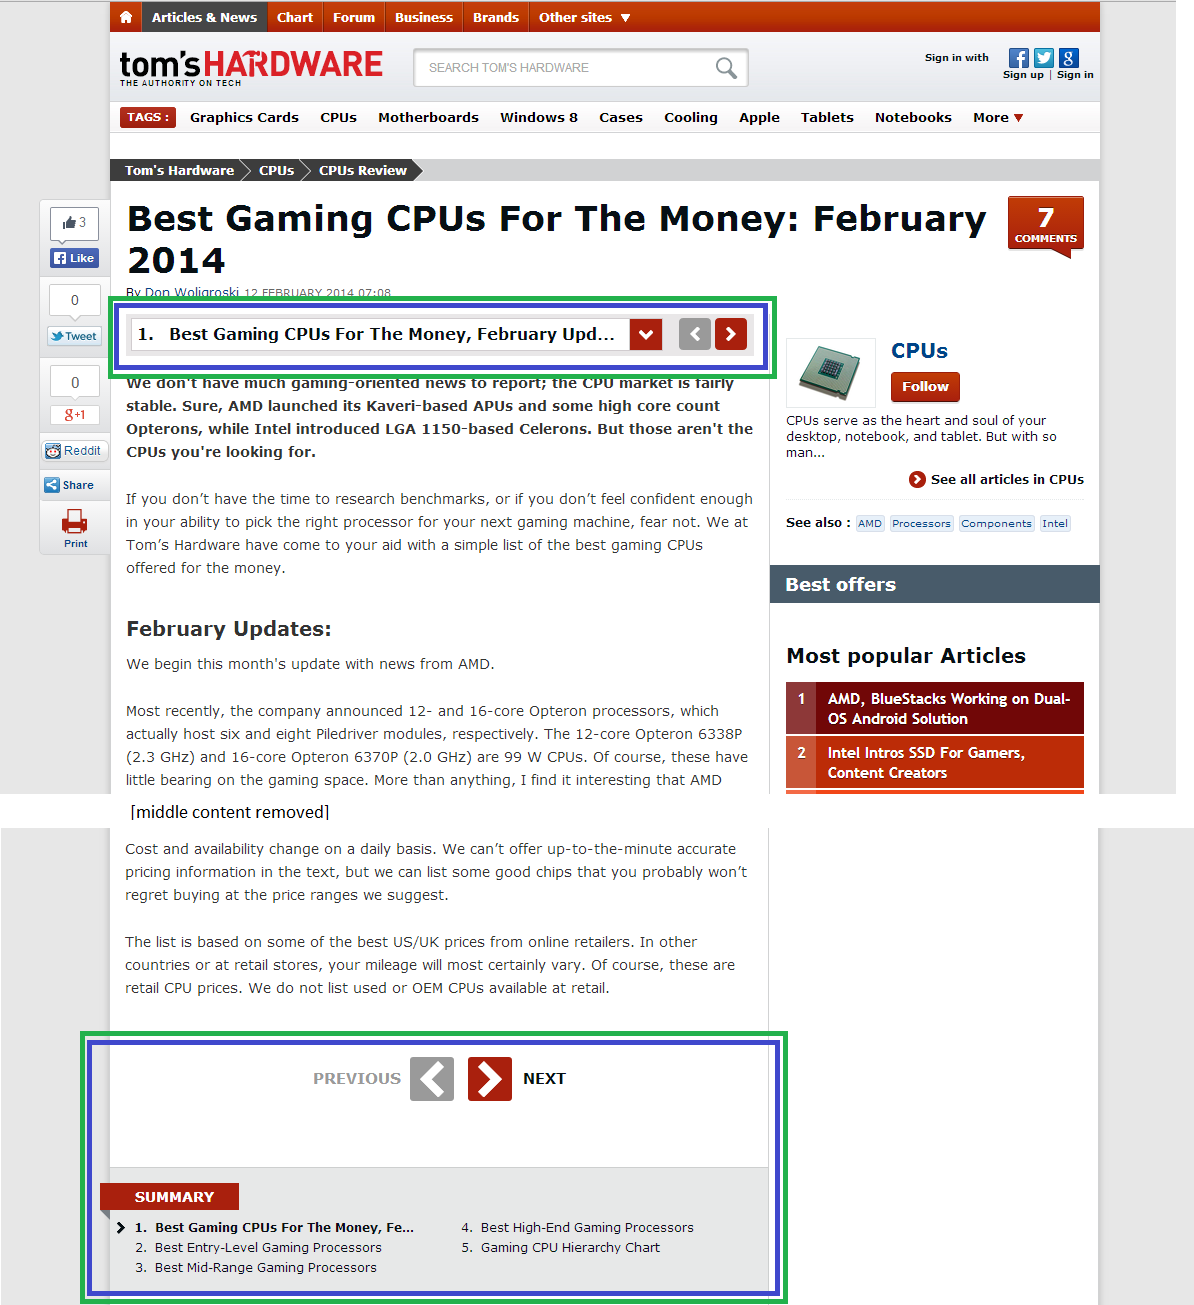 a screenshot showing a multi-section article on tom's hardware, with navigation elements highlighted